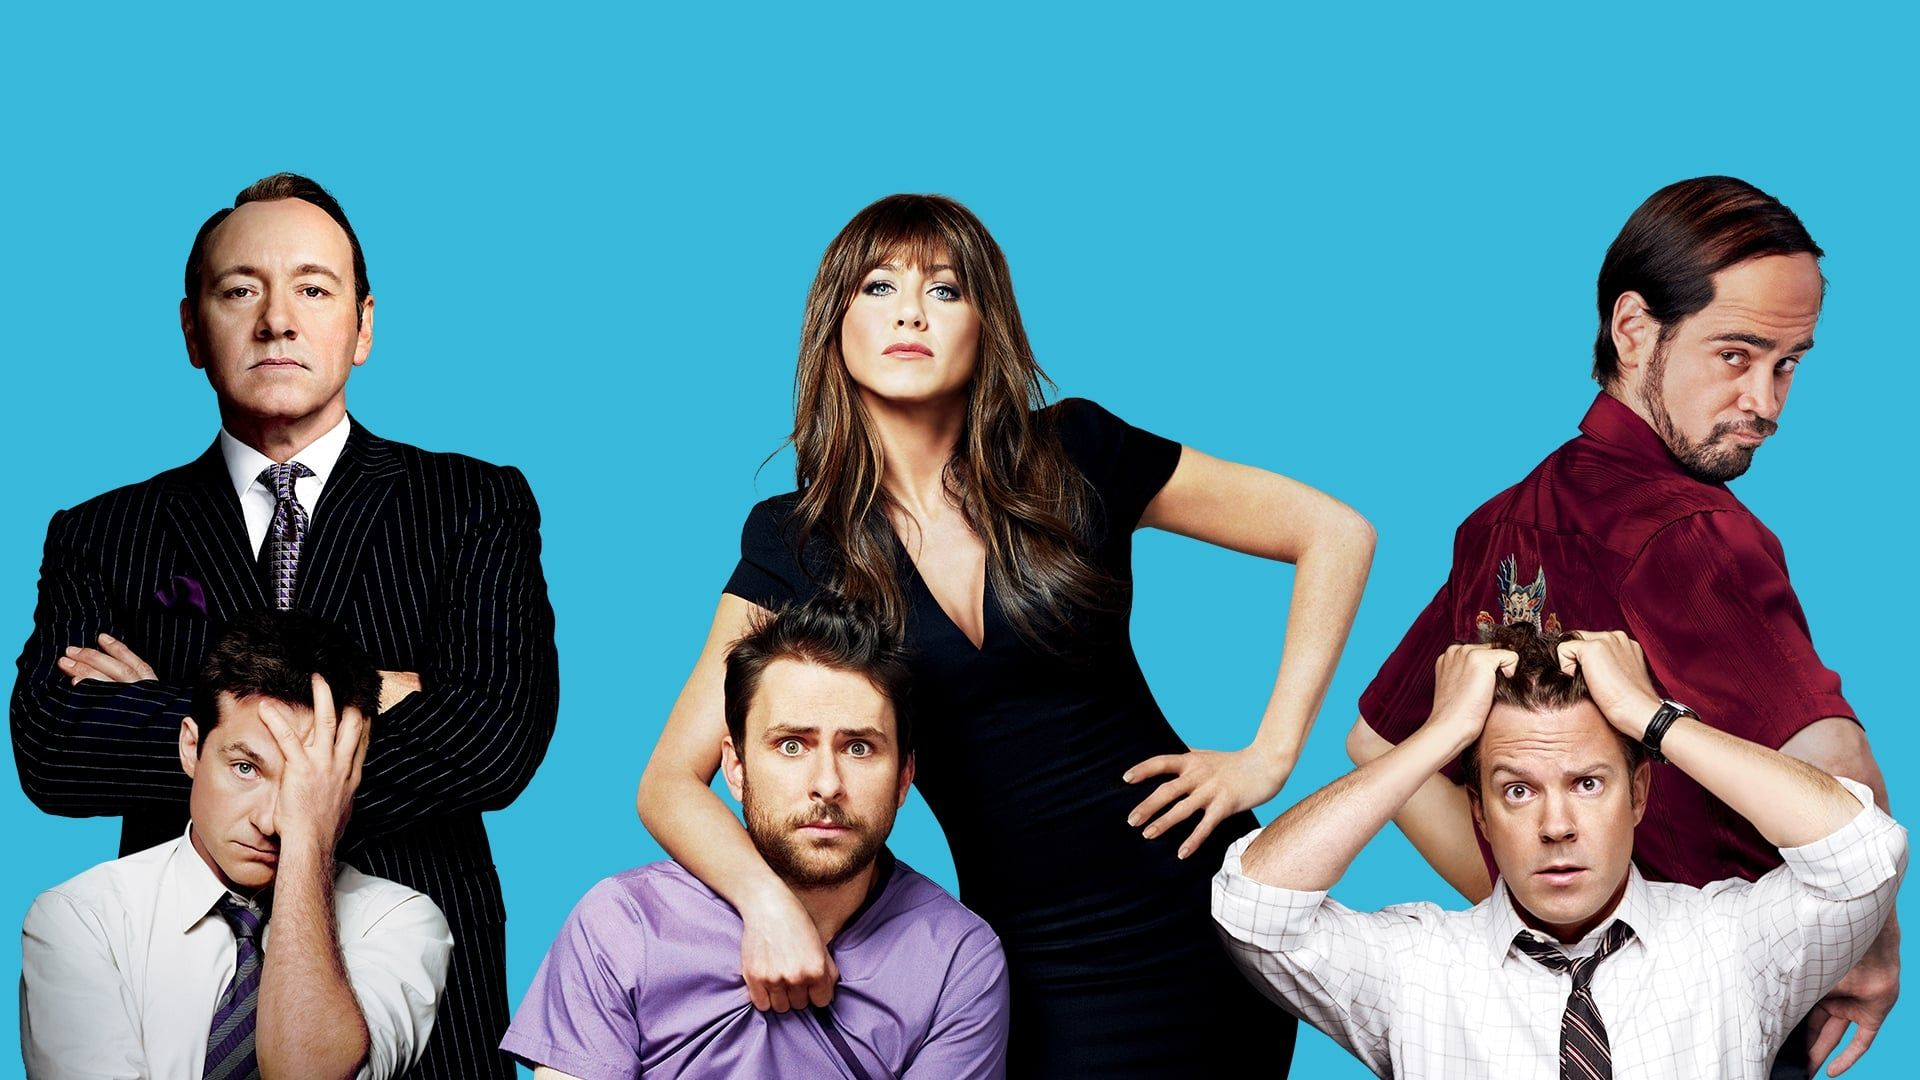 horrible bosses 2 free movie